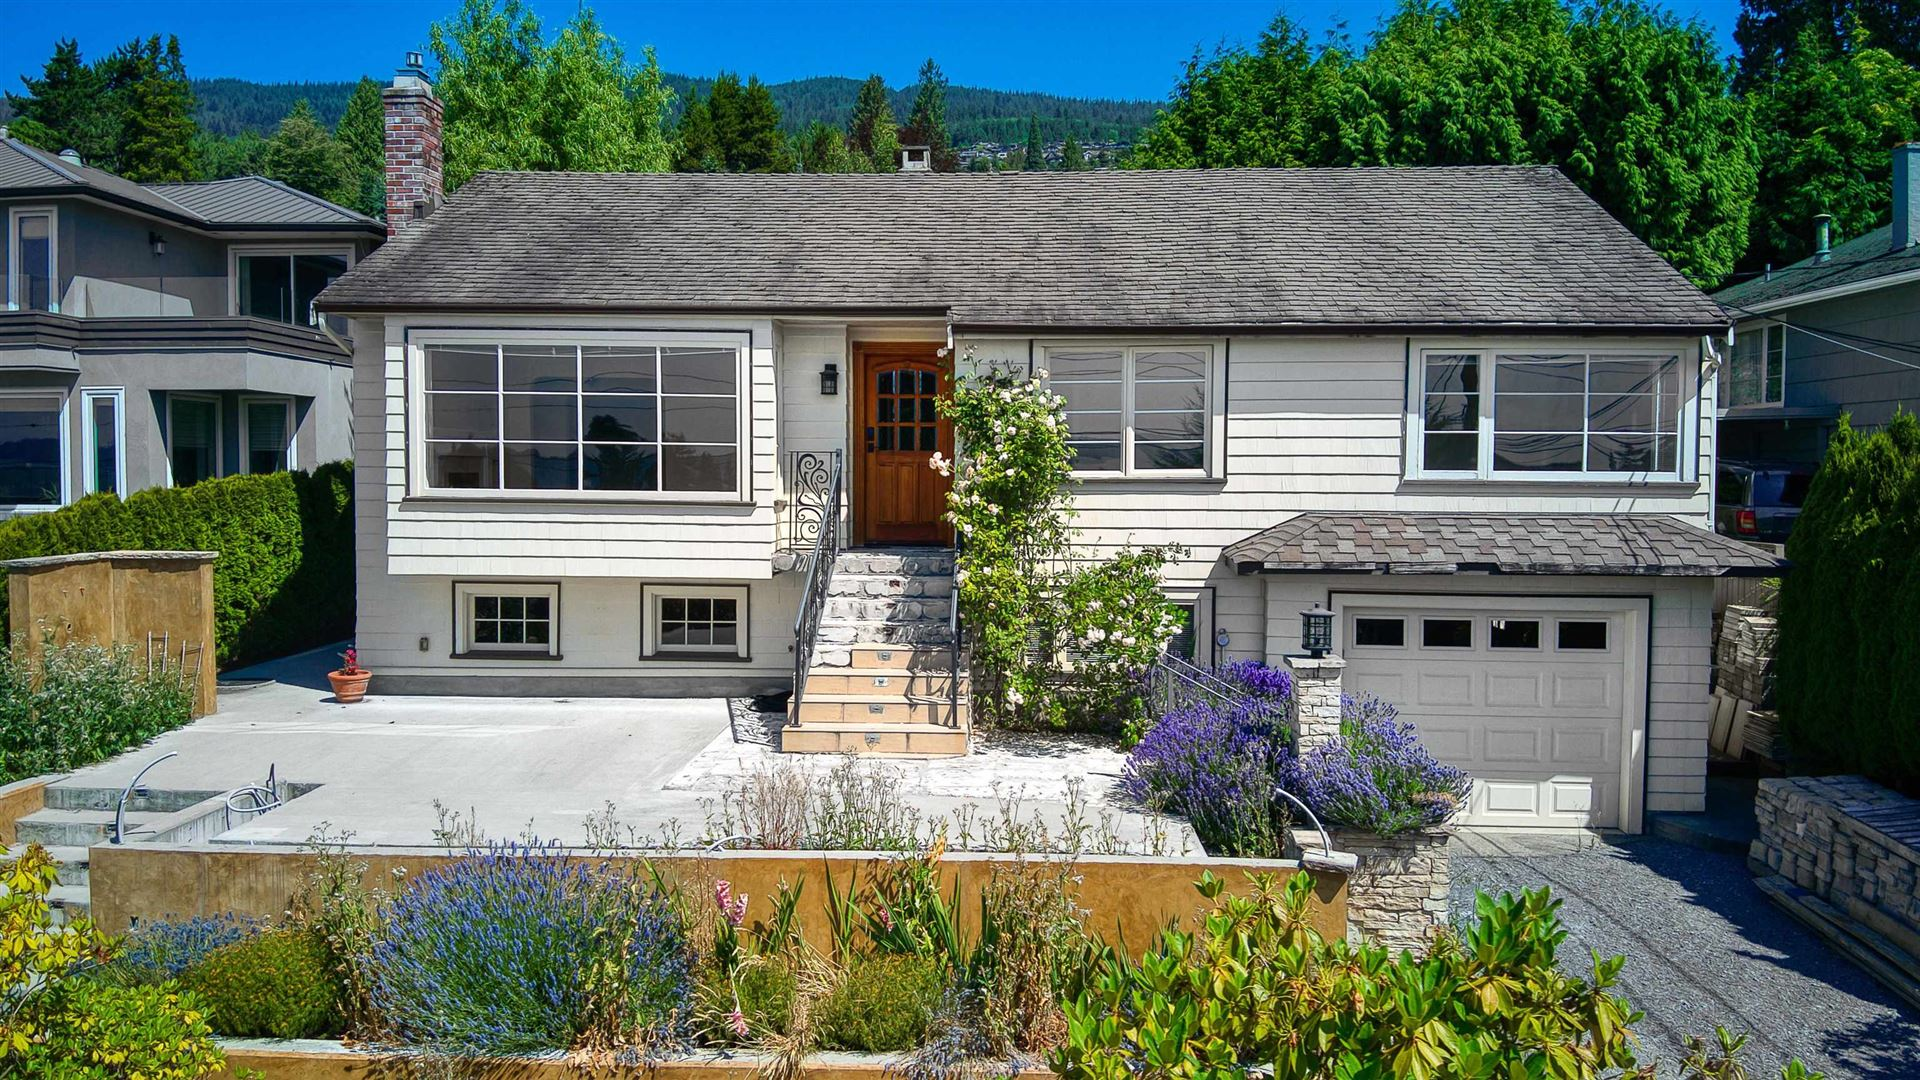 Photo of 2379 NELSON AVENUE, West Vancouver, BC V7V 2R1 (MLS # R2626483)